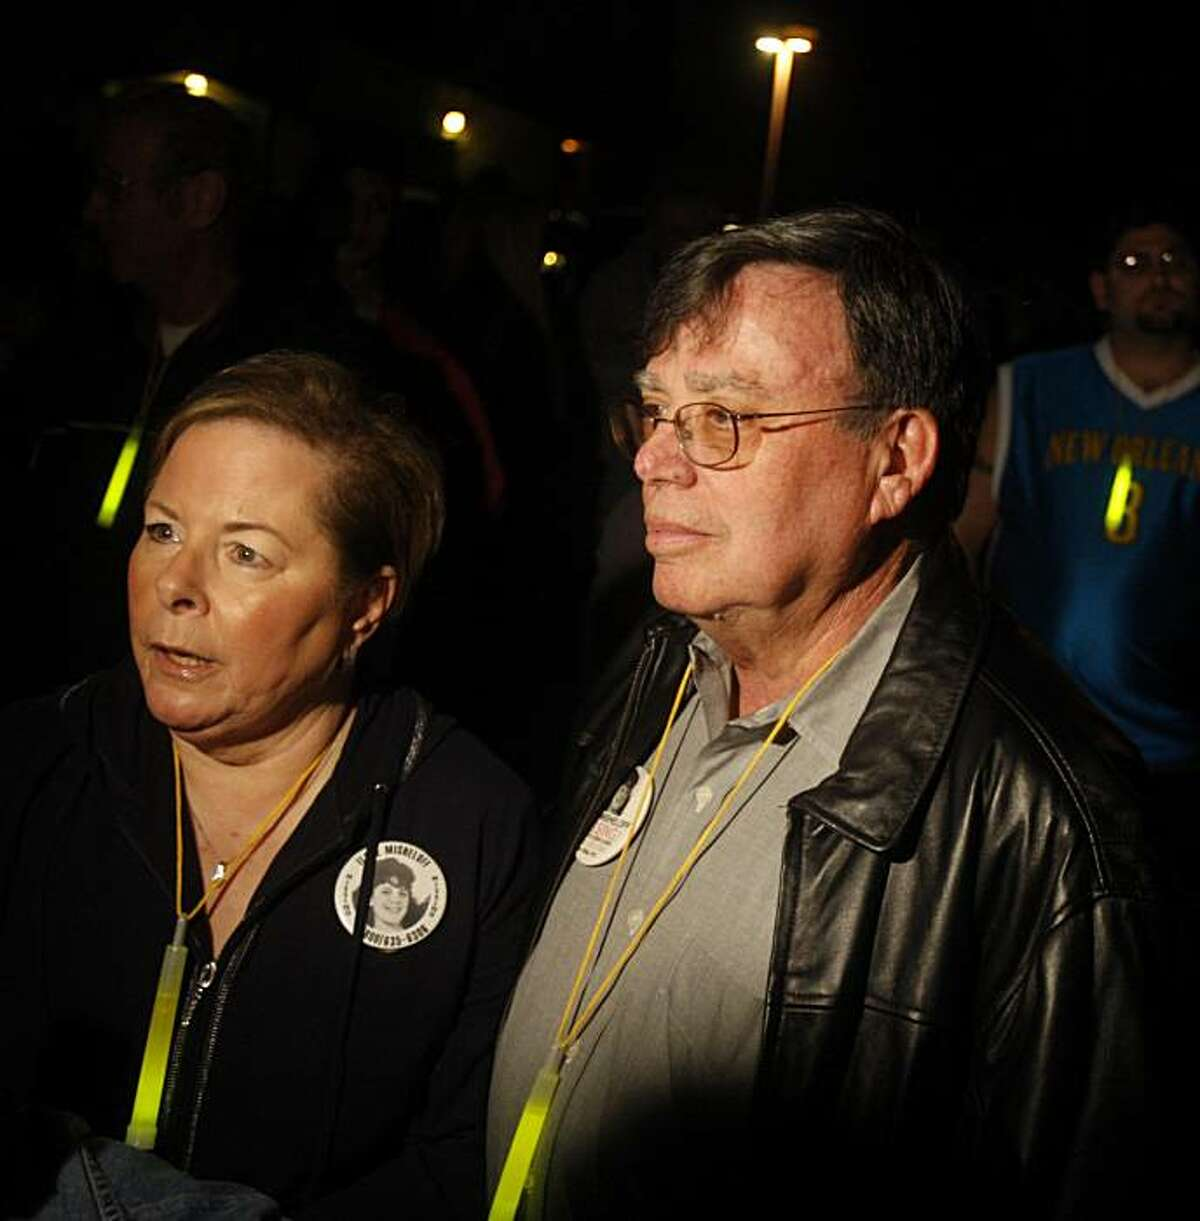 Mike and Maddi Misheloff hold their annual vigil in Dublin, Ca.,on Thursday, January 28, 2010. Twenty-one years ago, their 13-year-old daughter, Ilene Misheloff, was kidnapped off the street as she was walking home.